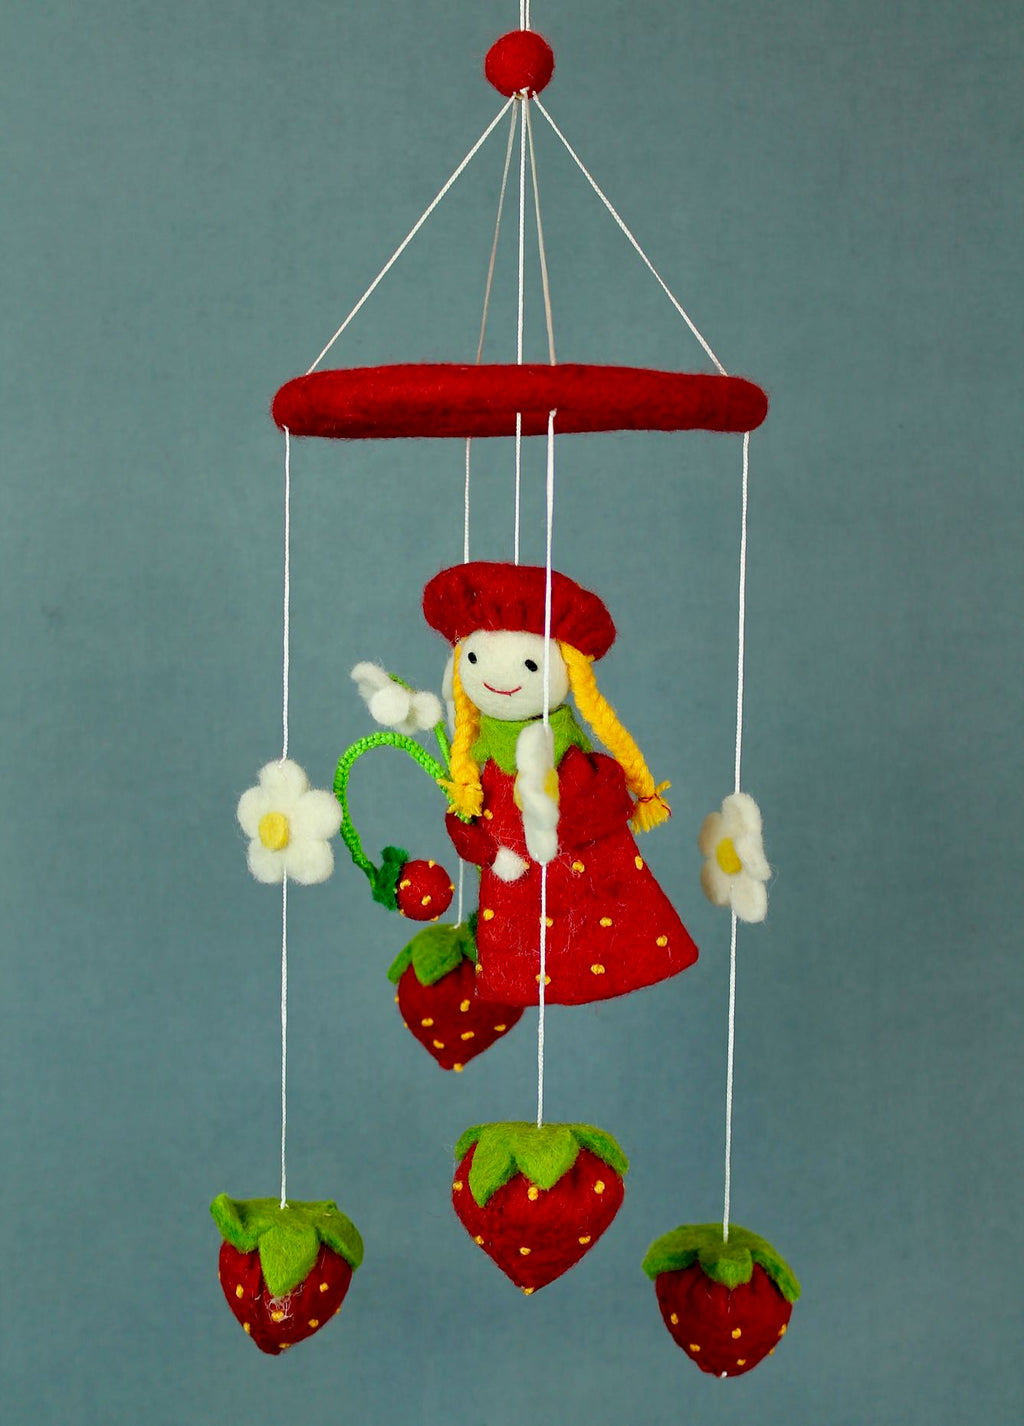 Strawberry Girl Felt Mobile